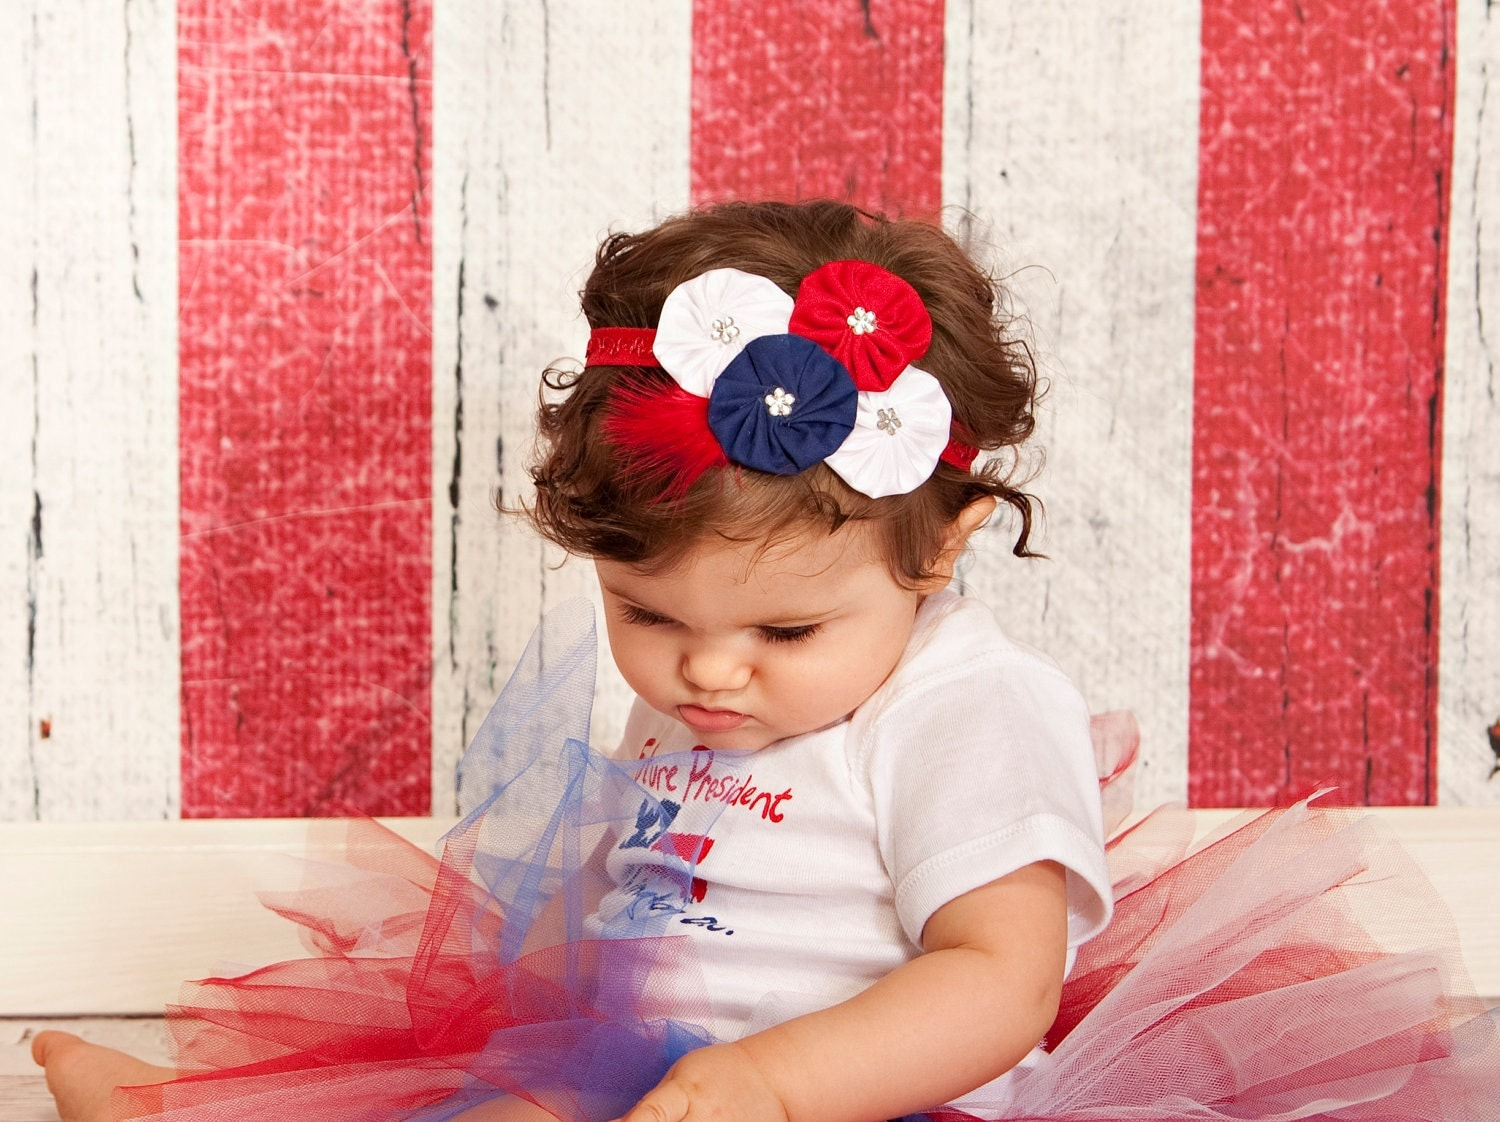 Fireworks headband - red white blue flowers, rhinestones, red feather, red fold over elastic - patriotic fourth of july - LucyLullaby